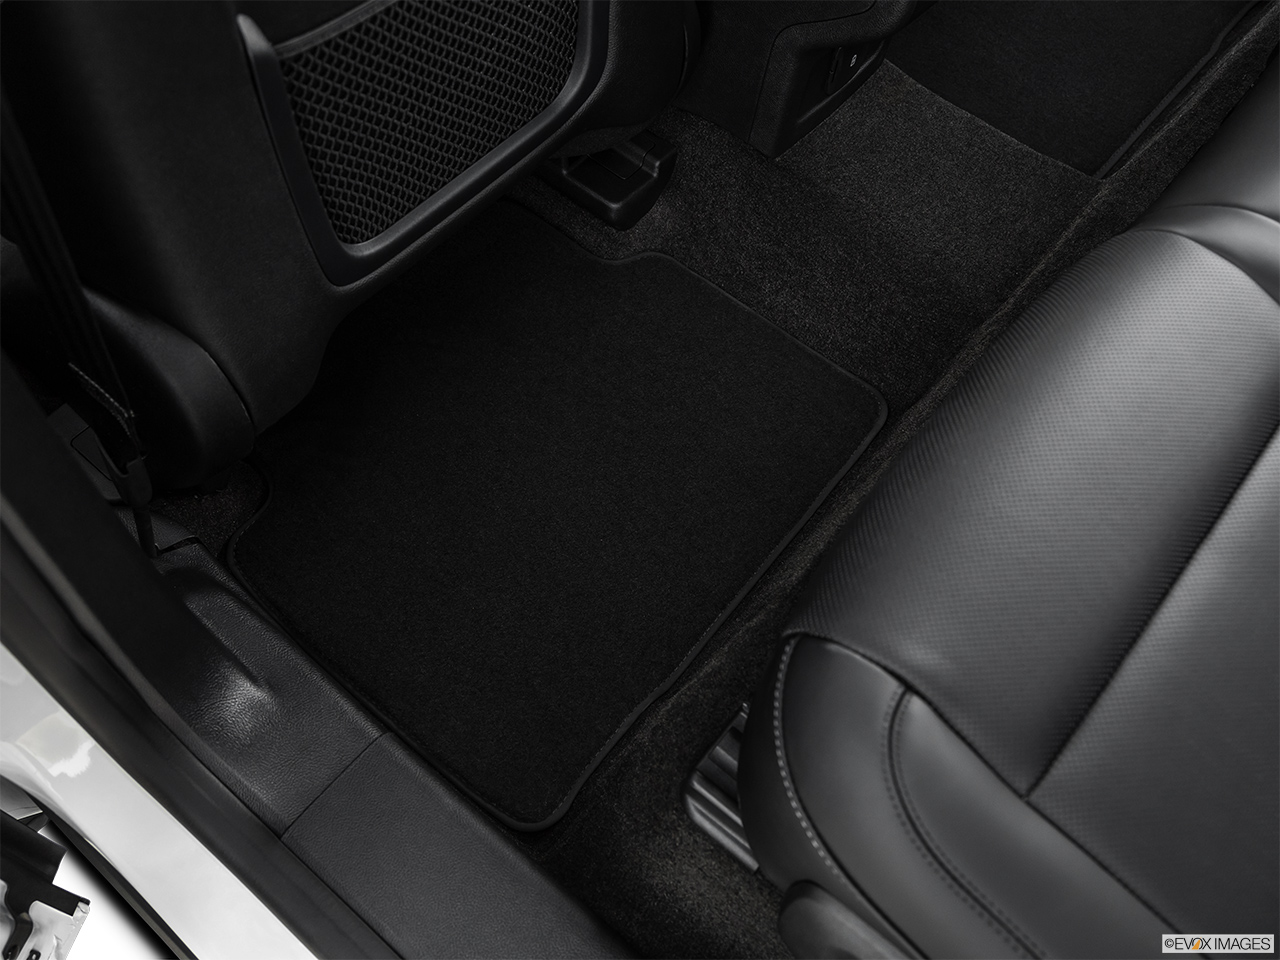 2020 Lincoln Corsair Standard Rear driver's side floor mat. Mid-seat level from outside looking in.